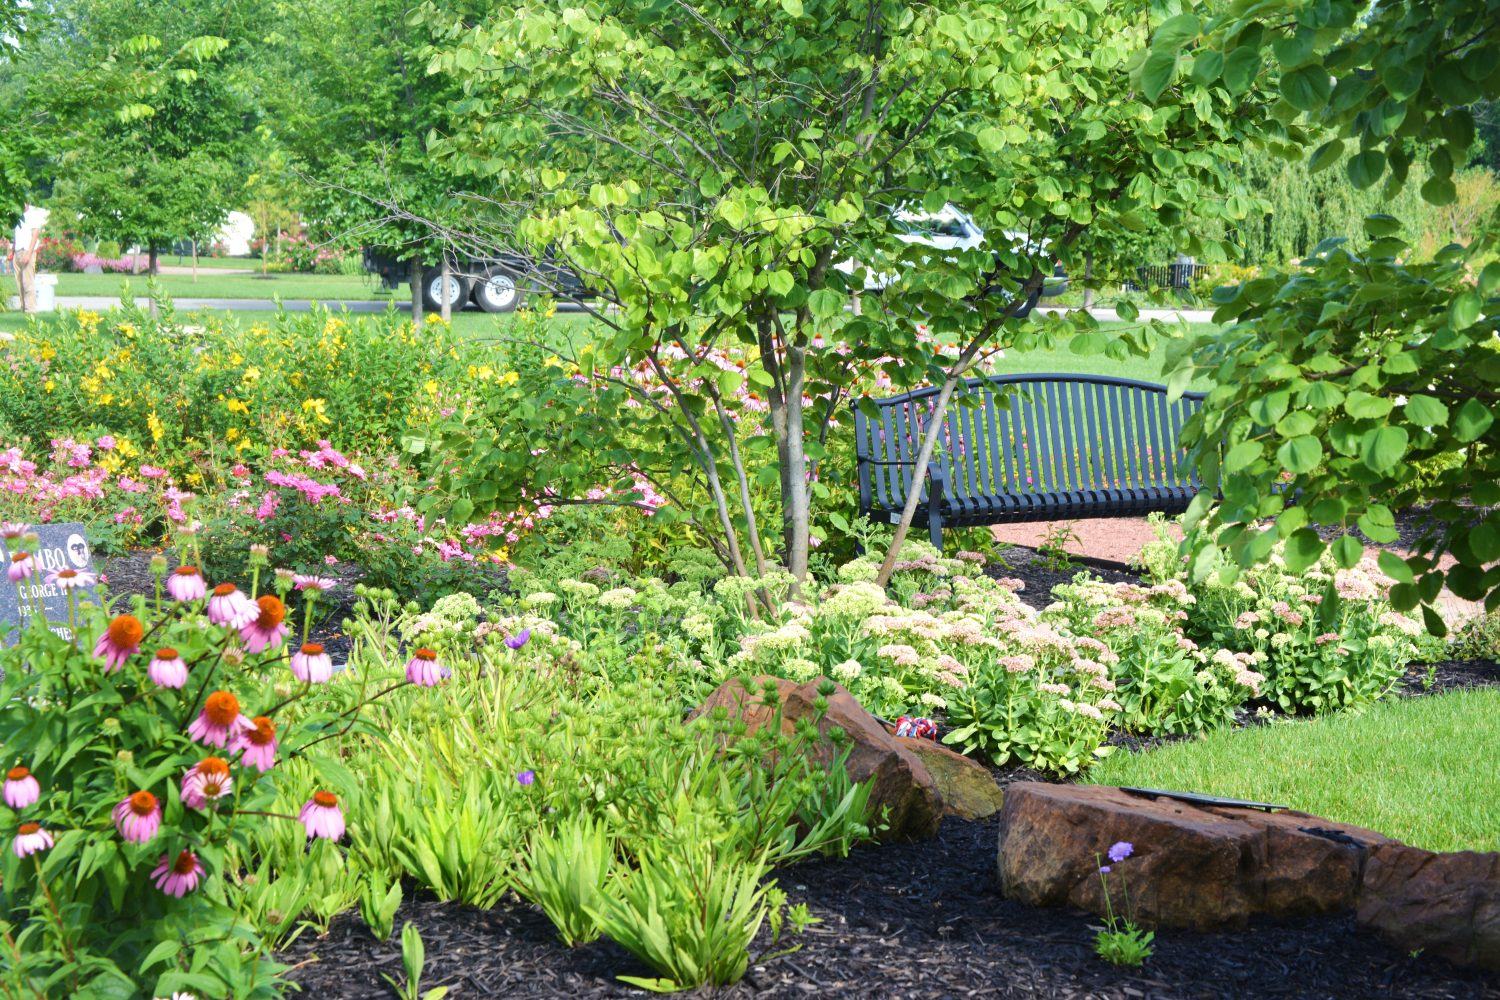 Park Scene with Annual Flowers